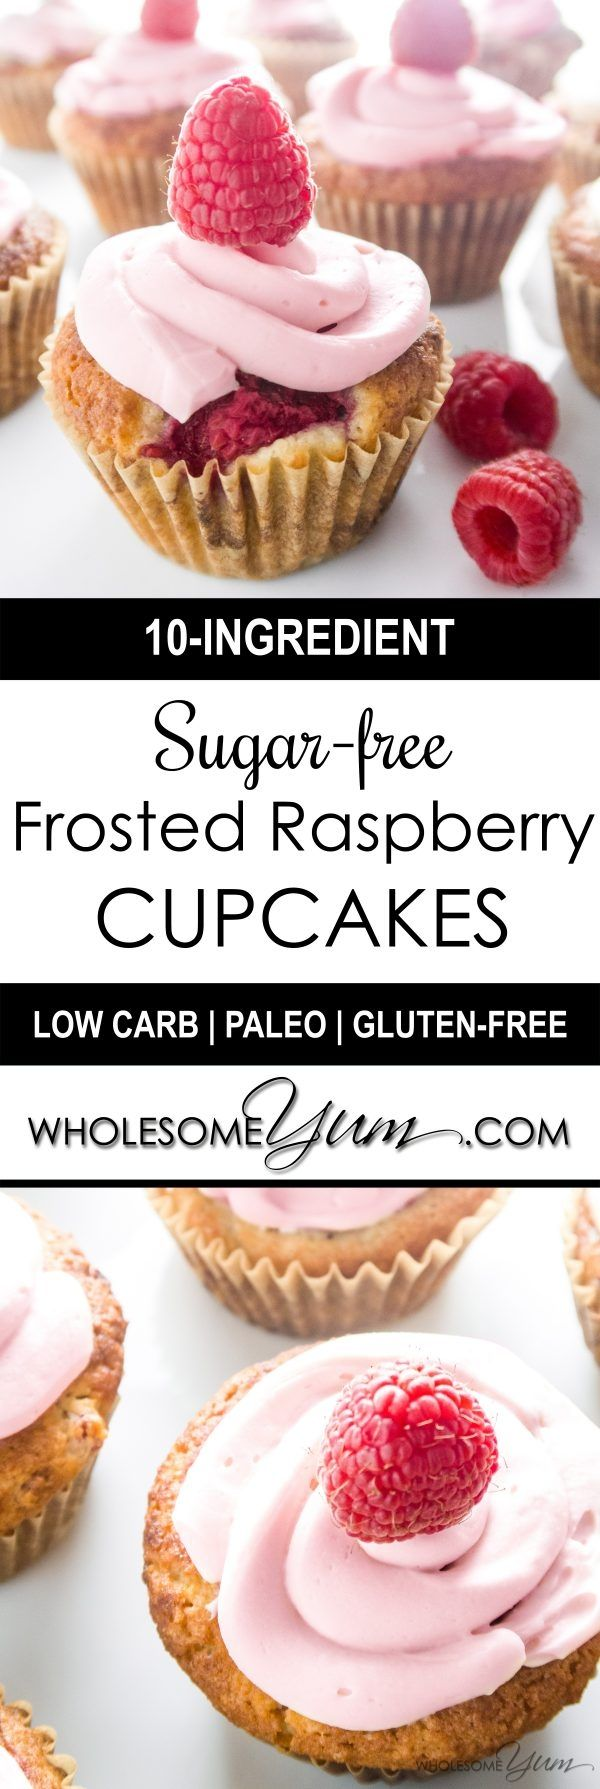 Sugar-free Frosted Raspberry Cupcakes (Low Carb, Paleo) - These sugar-free cupcakes are bursting with juicy raspberries and topped with natural raspberry buttercream frosting. Low carb, gluten-free, paleo friendly, and THM S.